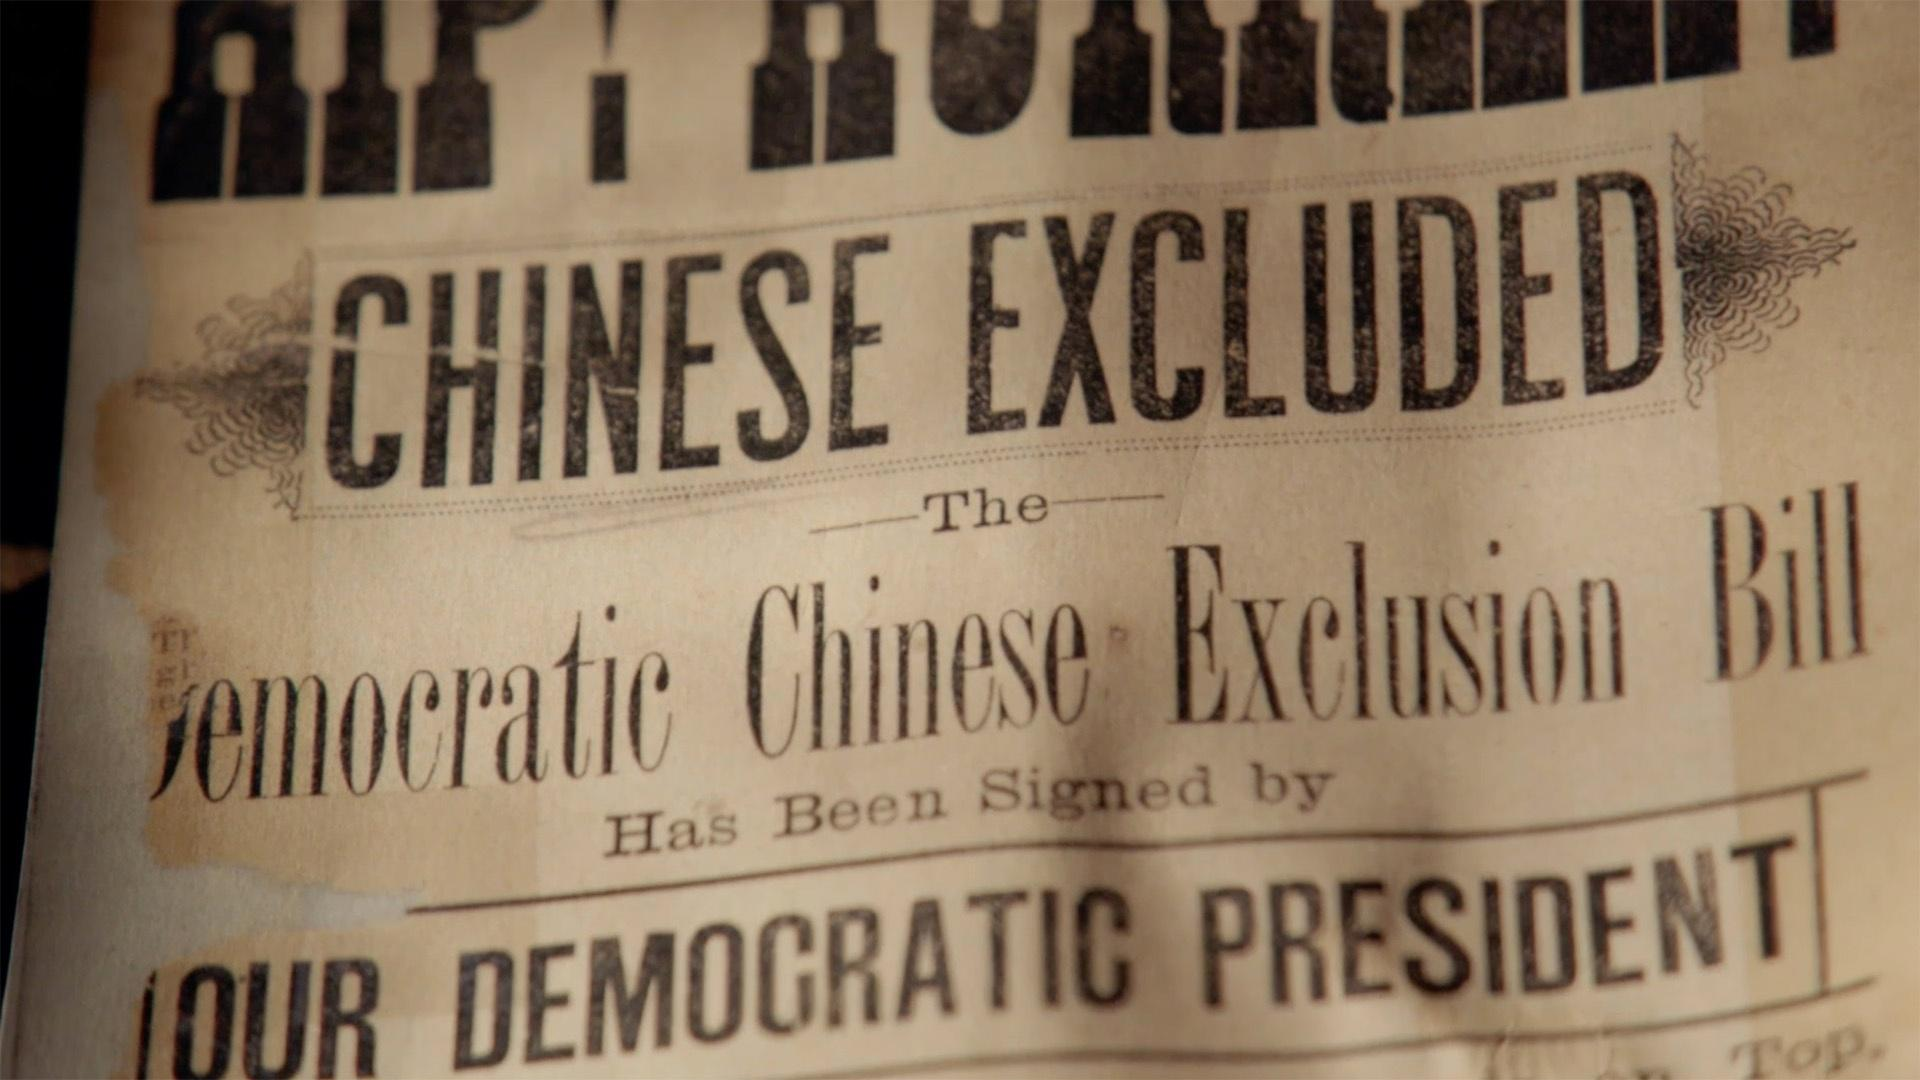 The Chinese Exclusion Act Preview American Experience Pbs